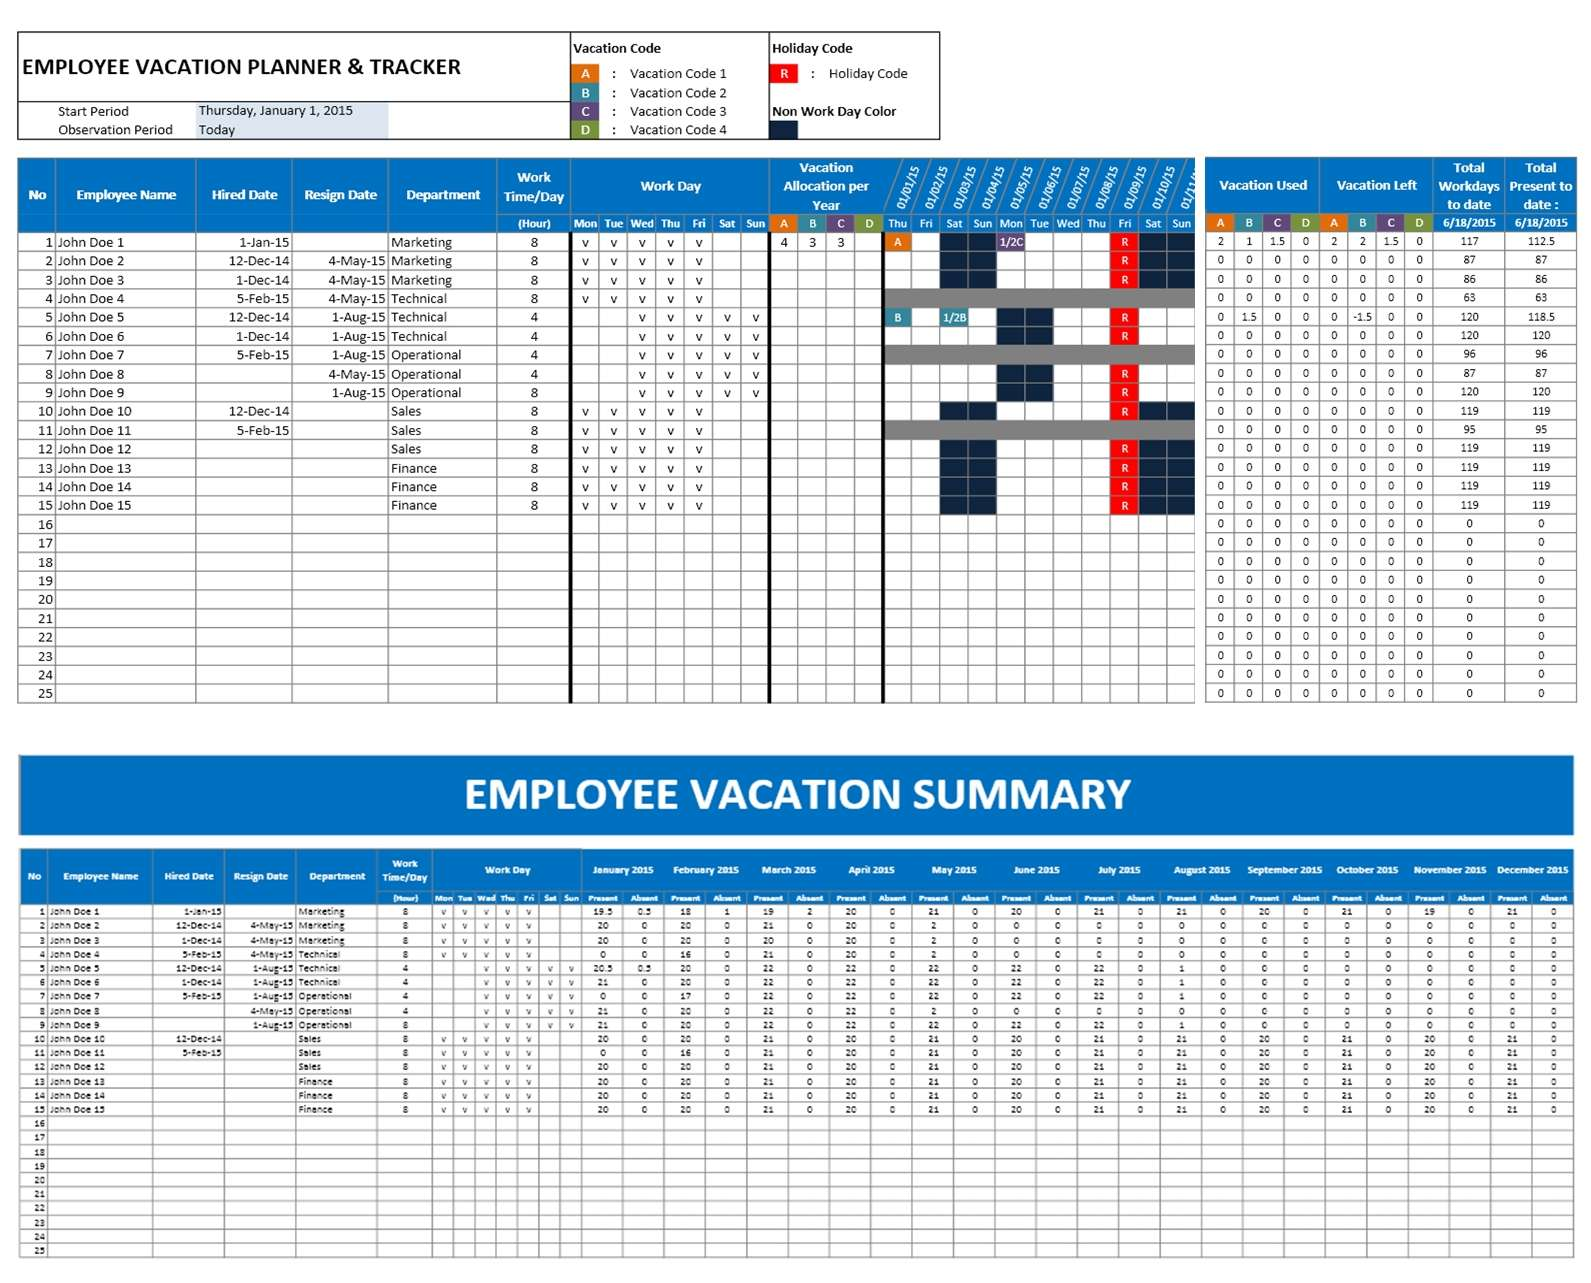 employee vacation calendar excel Ideal.vistalist.co